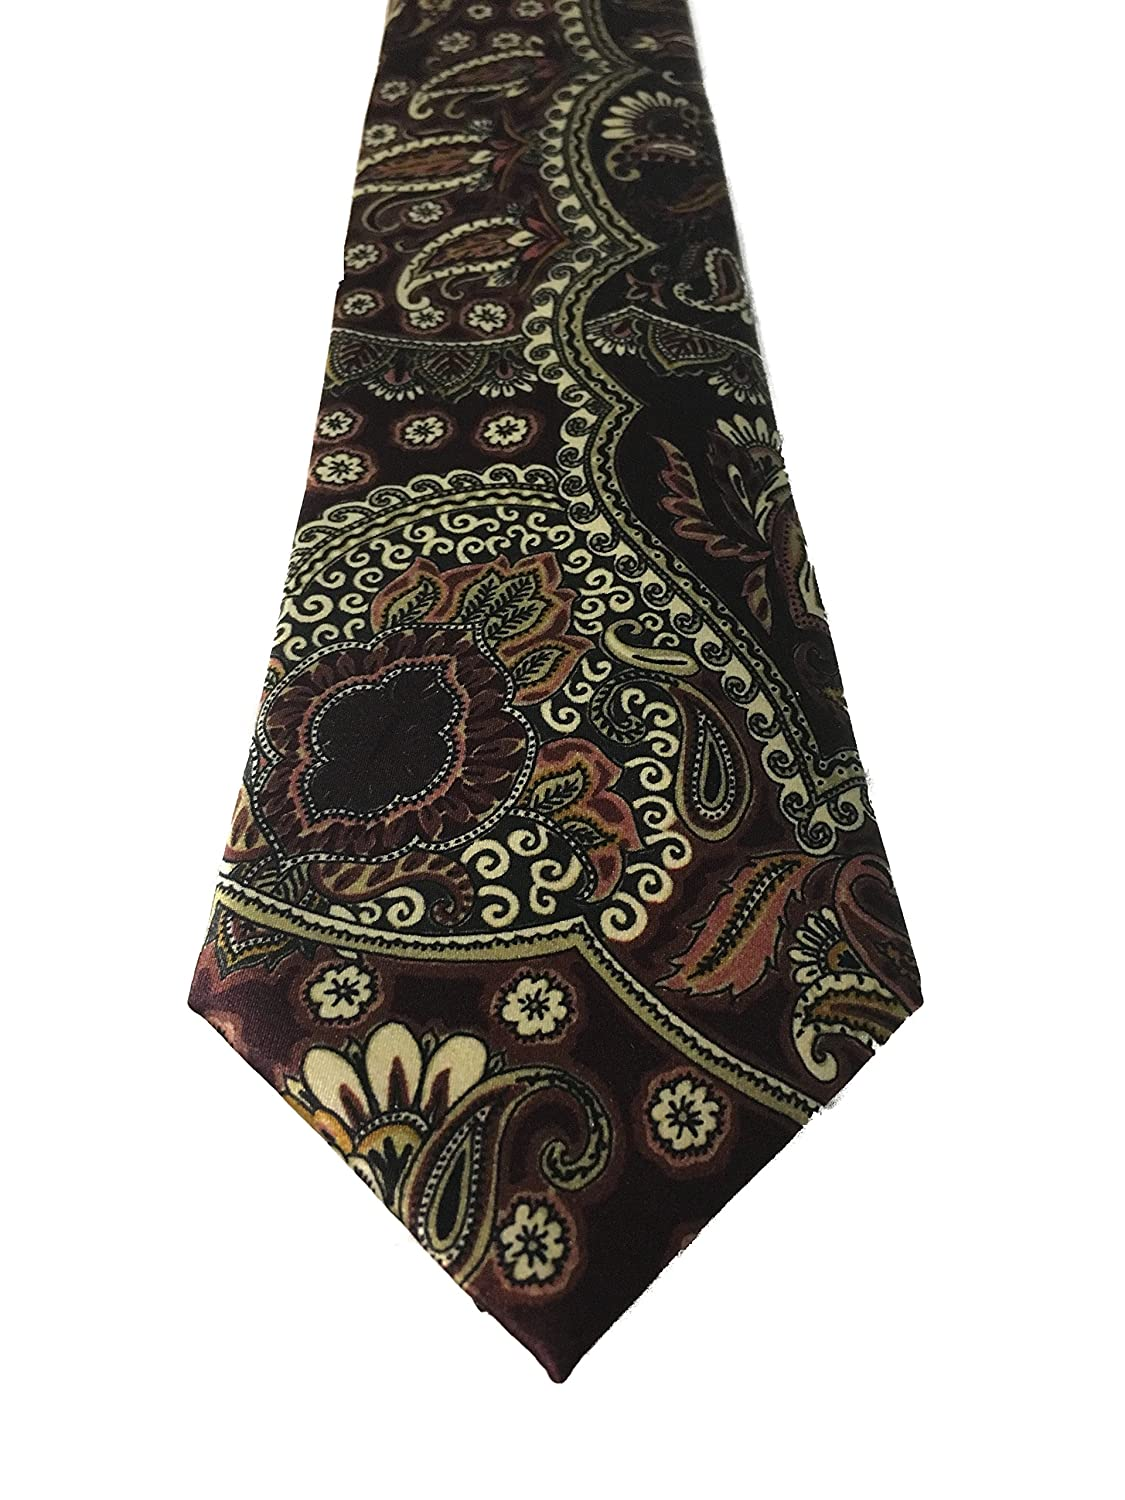 Brioni Mens Designer Italian Neck tie Assorted Selection Great for Any Occassion